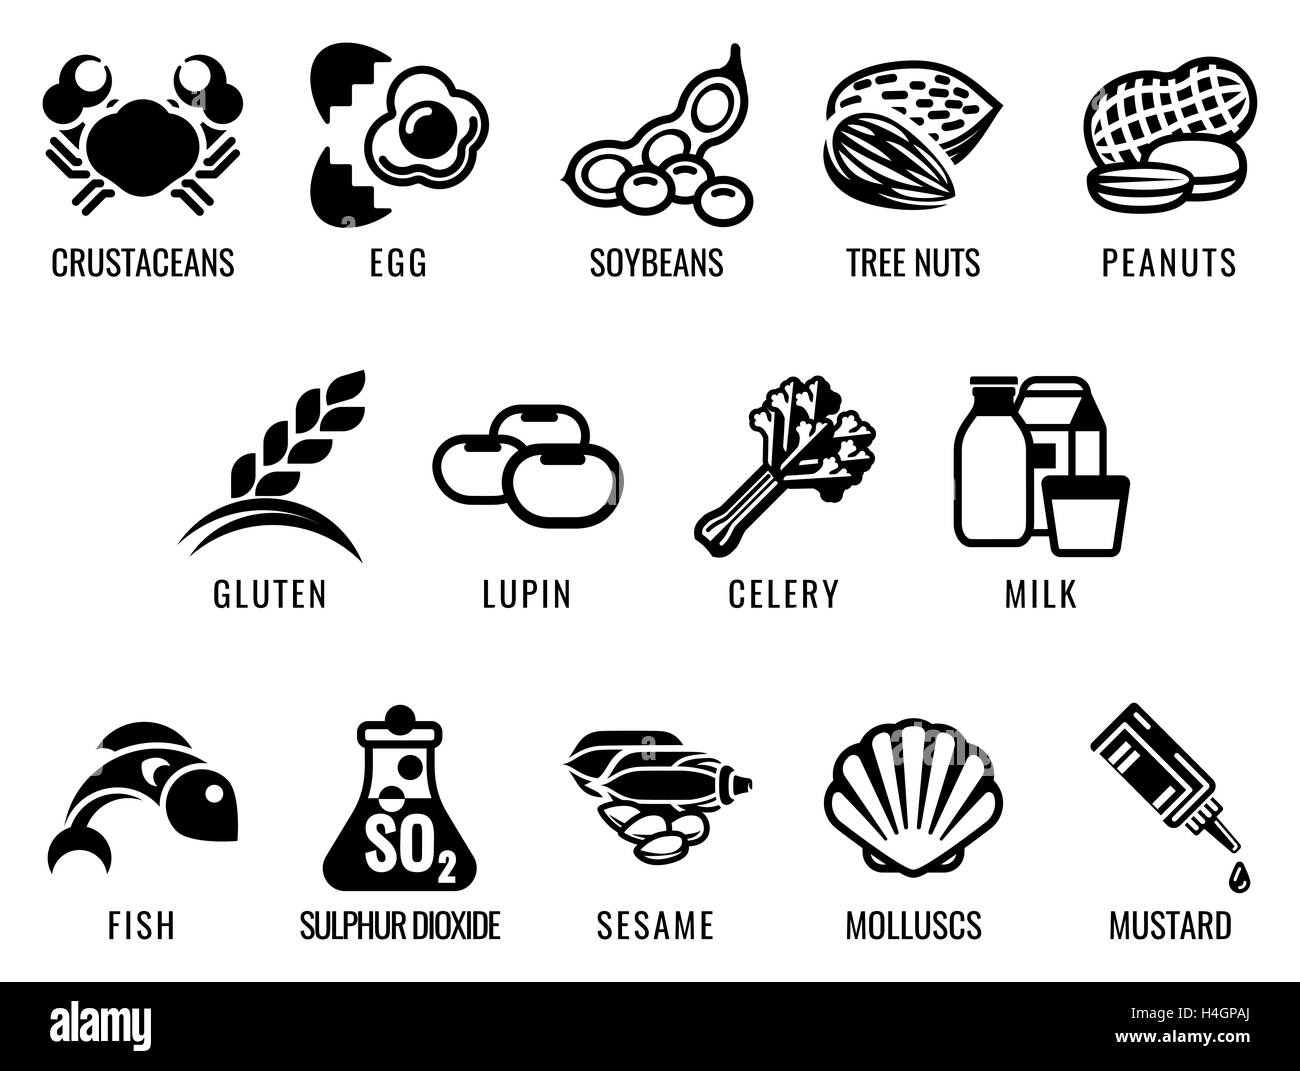 Food allergy icons including the 14 food allergies outlined by the EU Food Information for Consumers Regulation Stock Photo